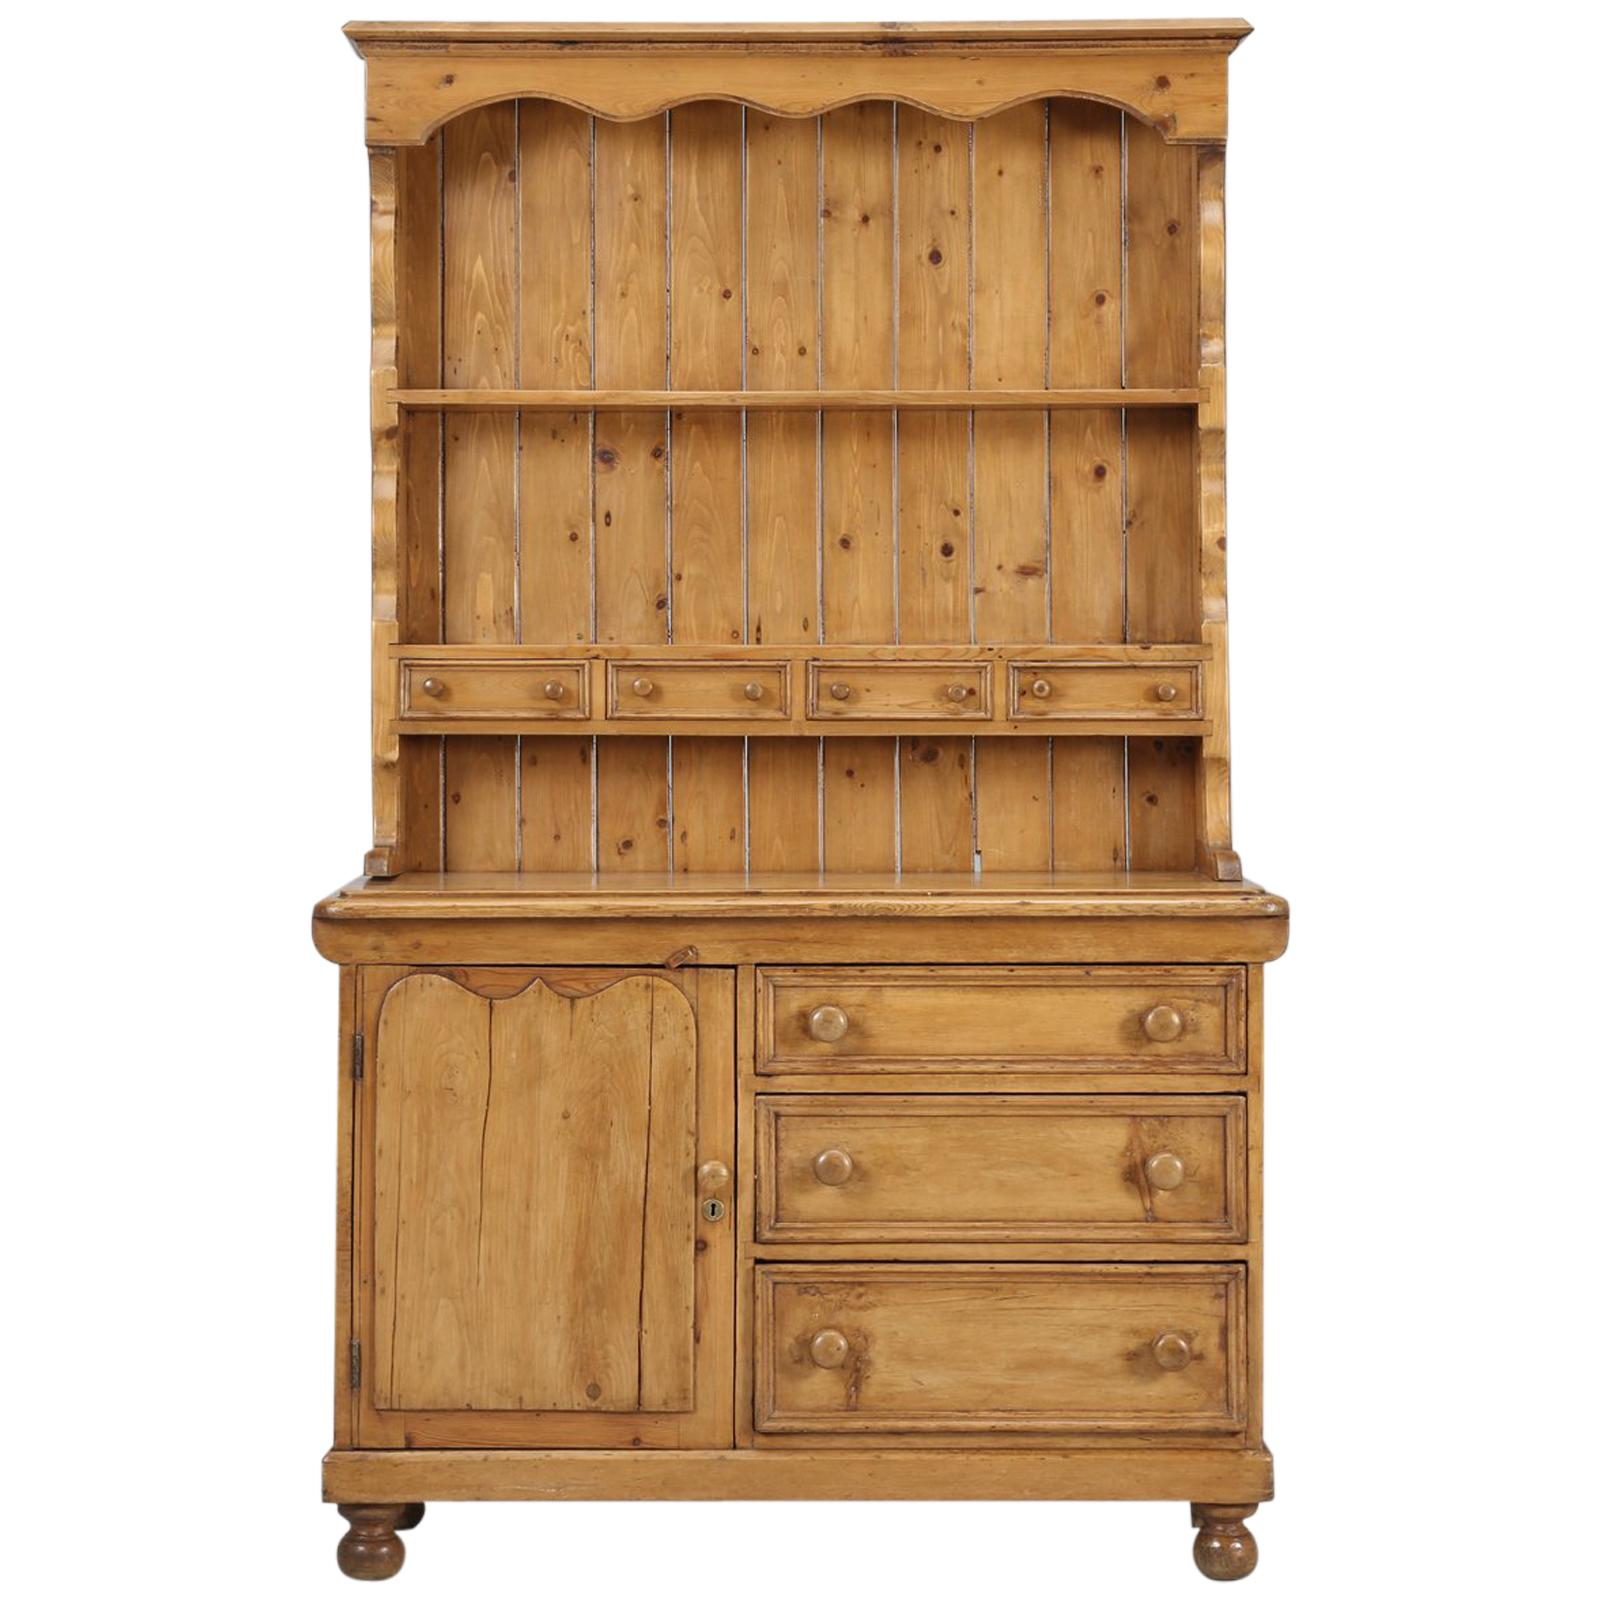 Antique Pine Hutch Dresser Or Cabinet At 1stdibs